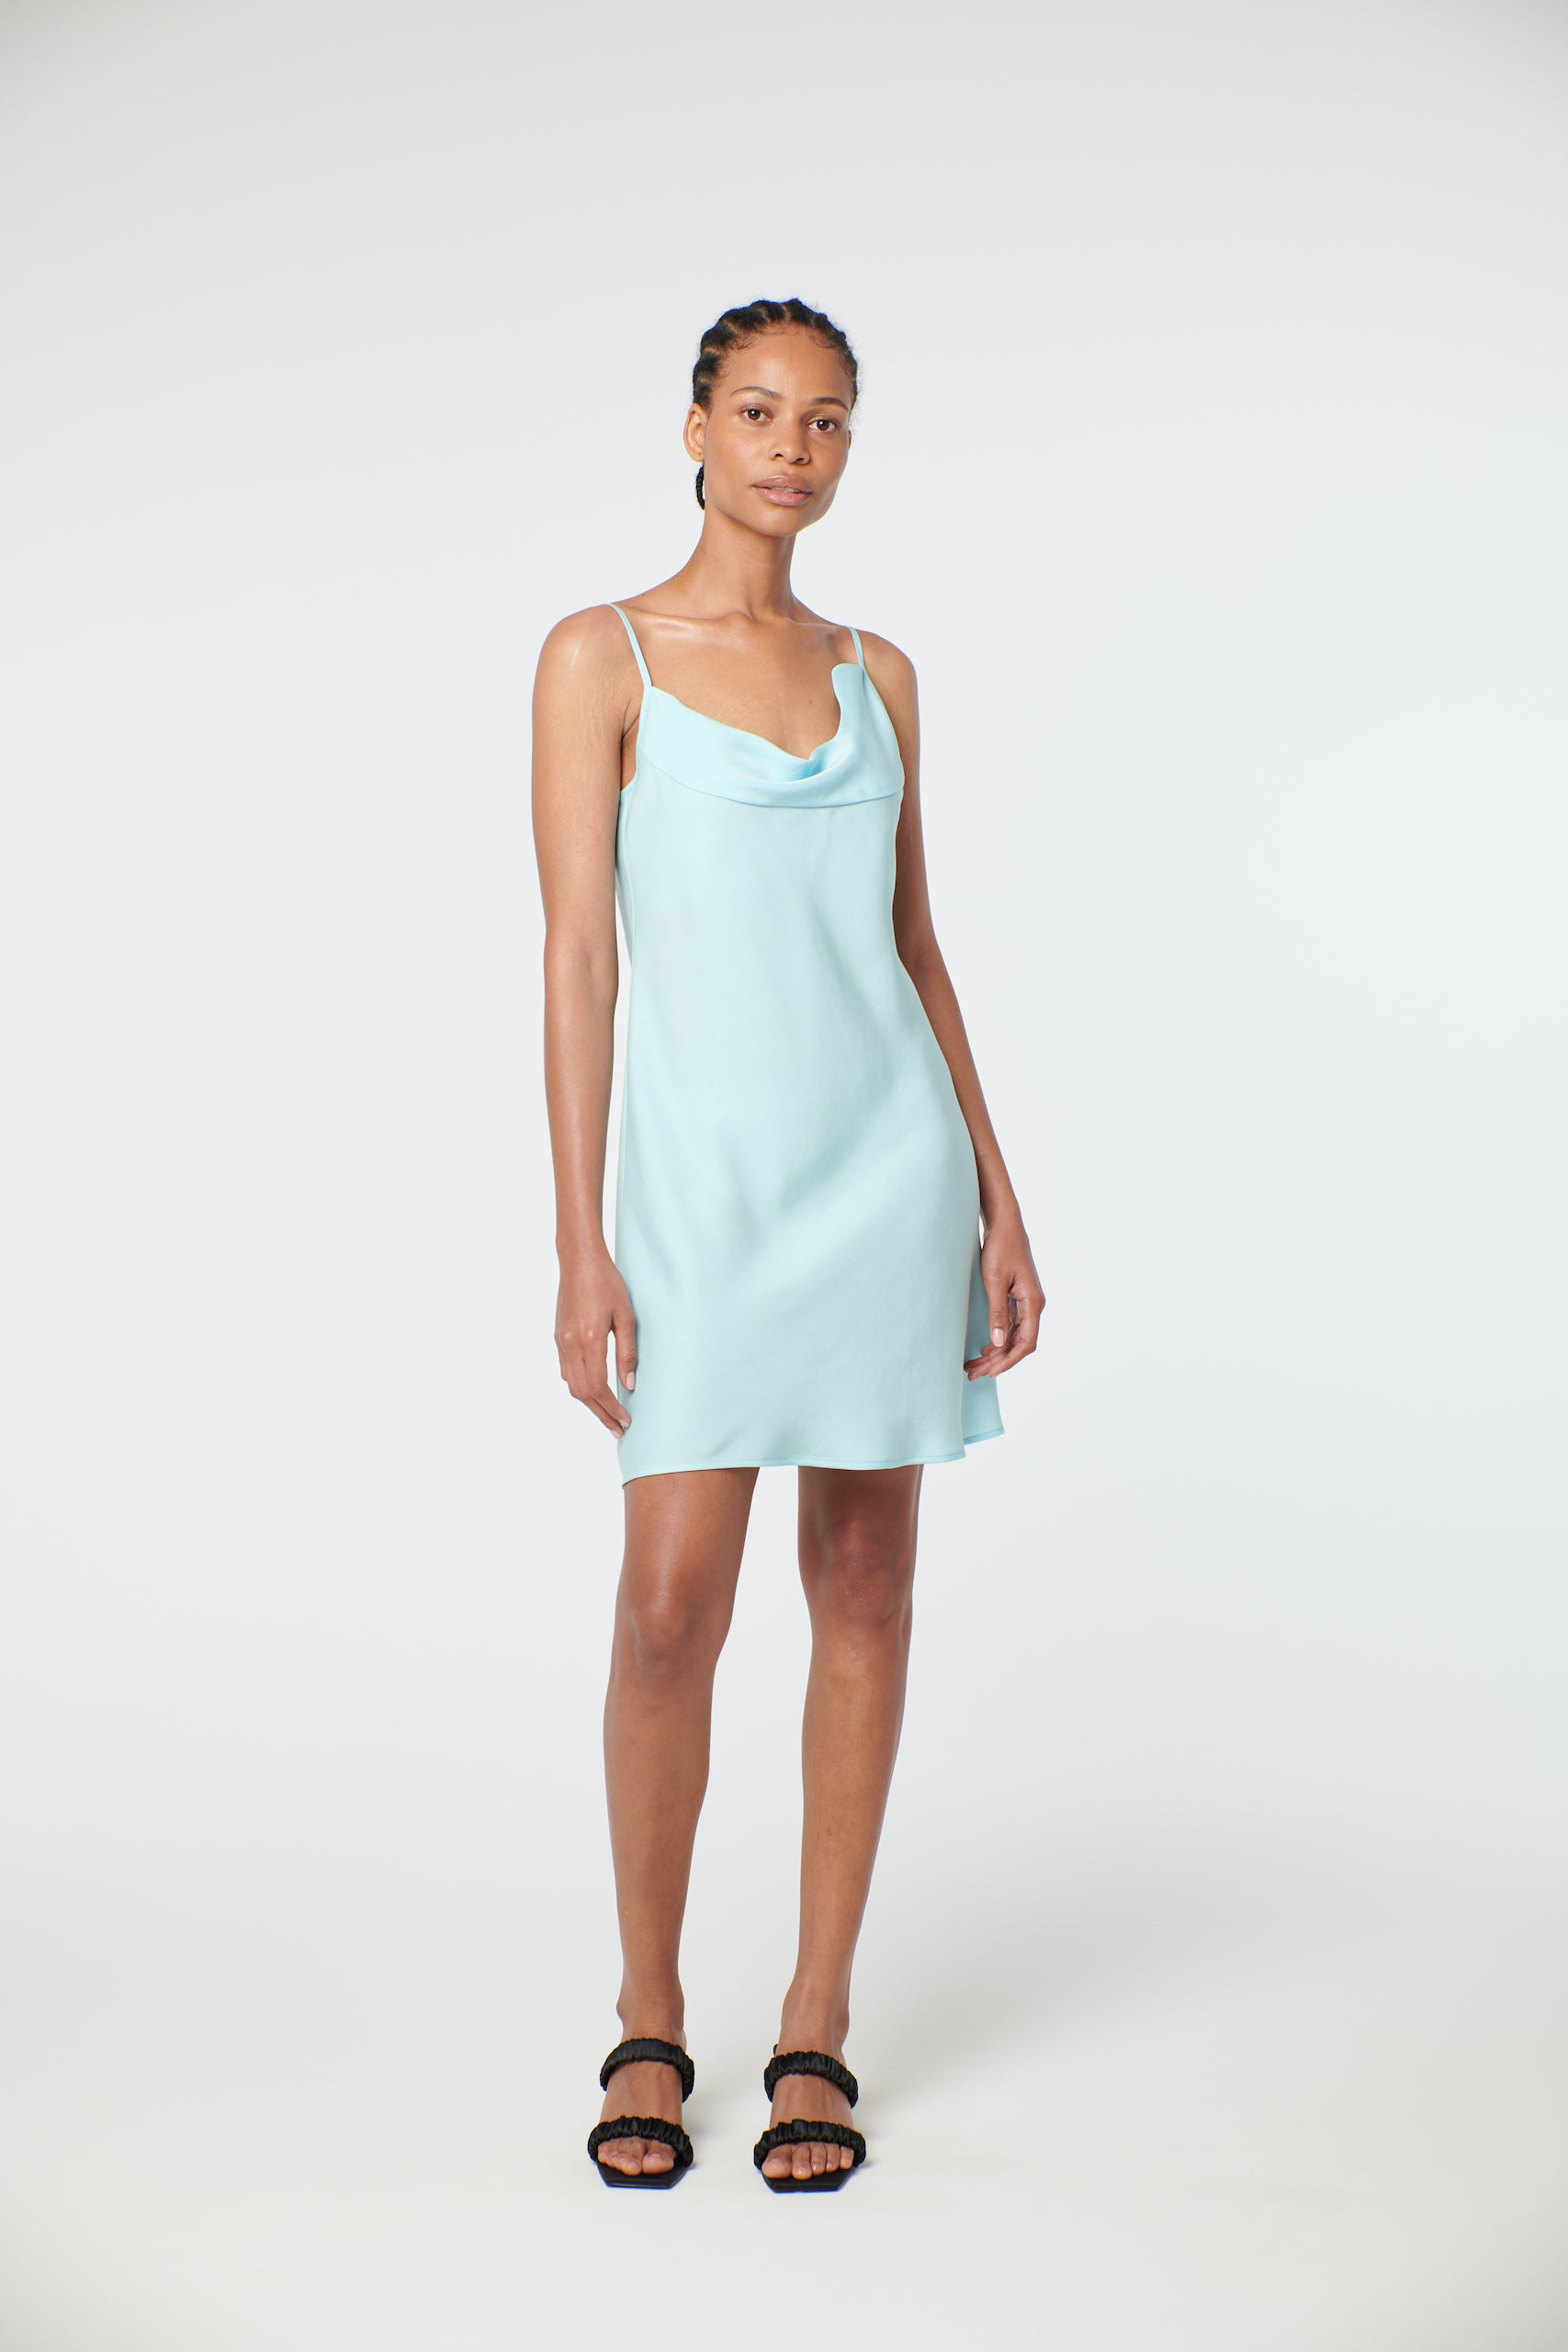 Siena Dress - Seafoam